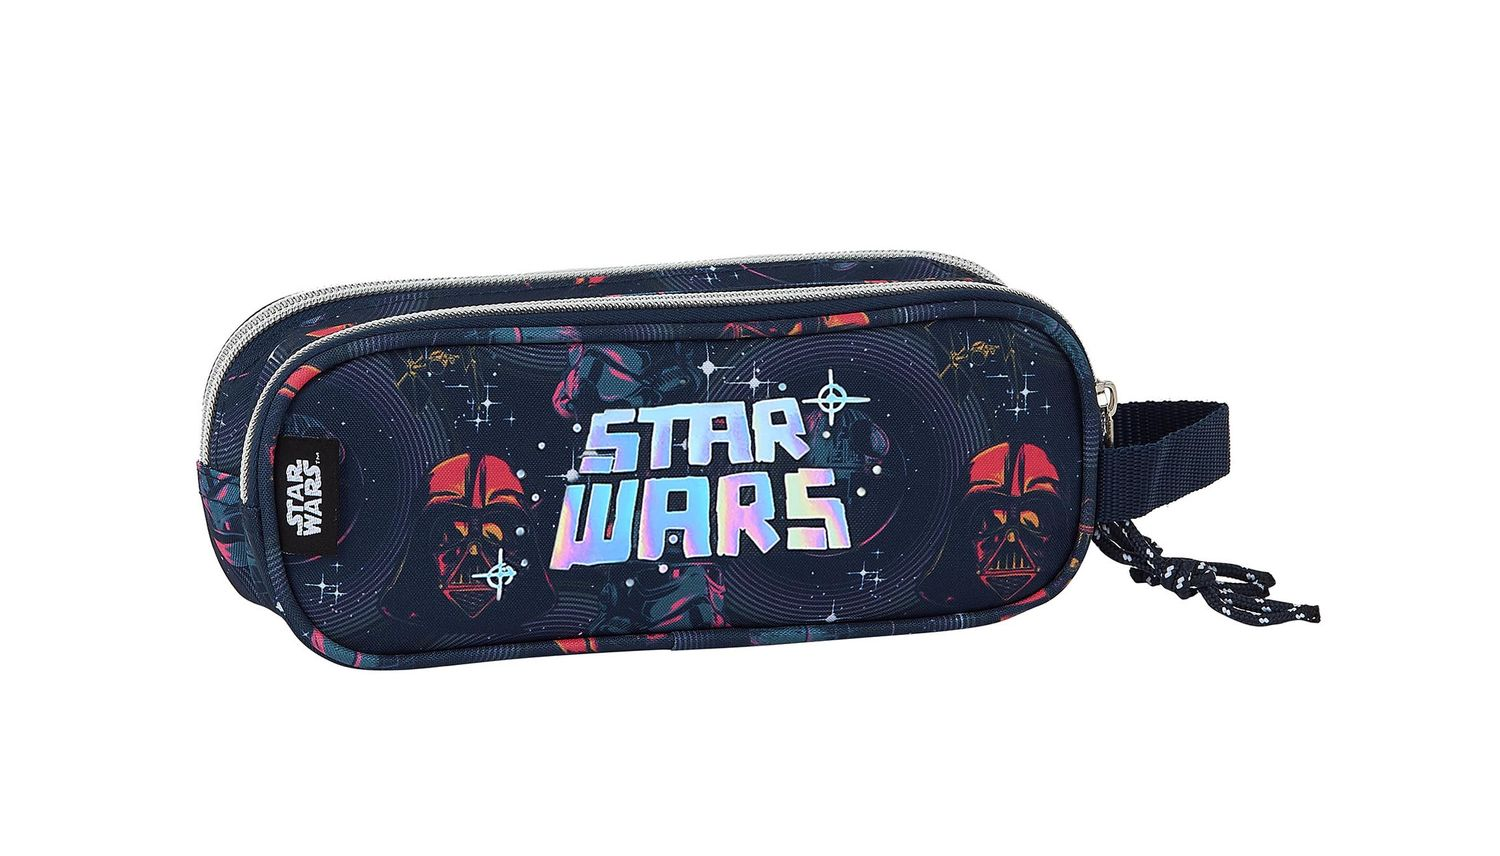 STAR WARS DEATH STAR Double Pencil Case 21 cm – image 1